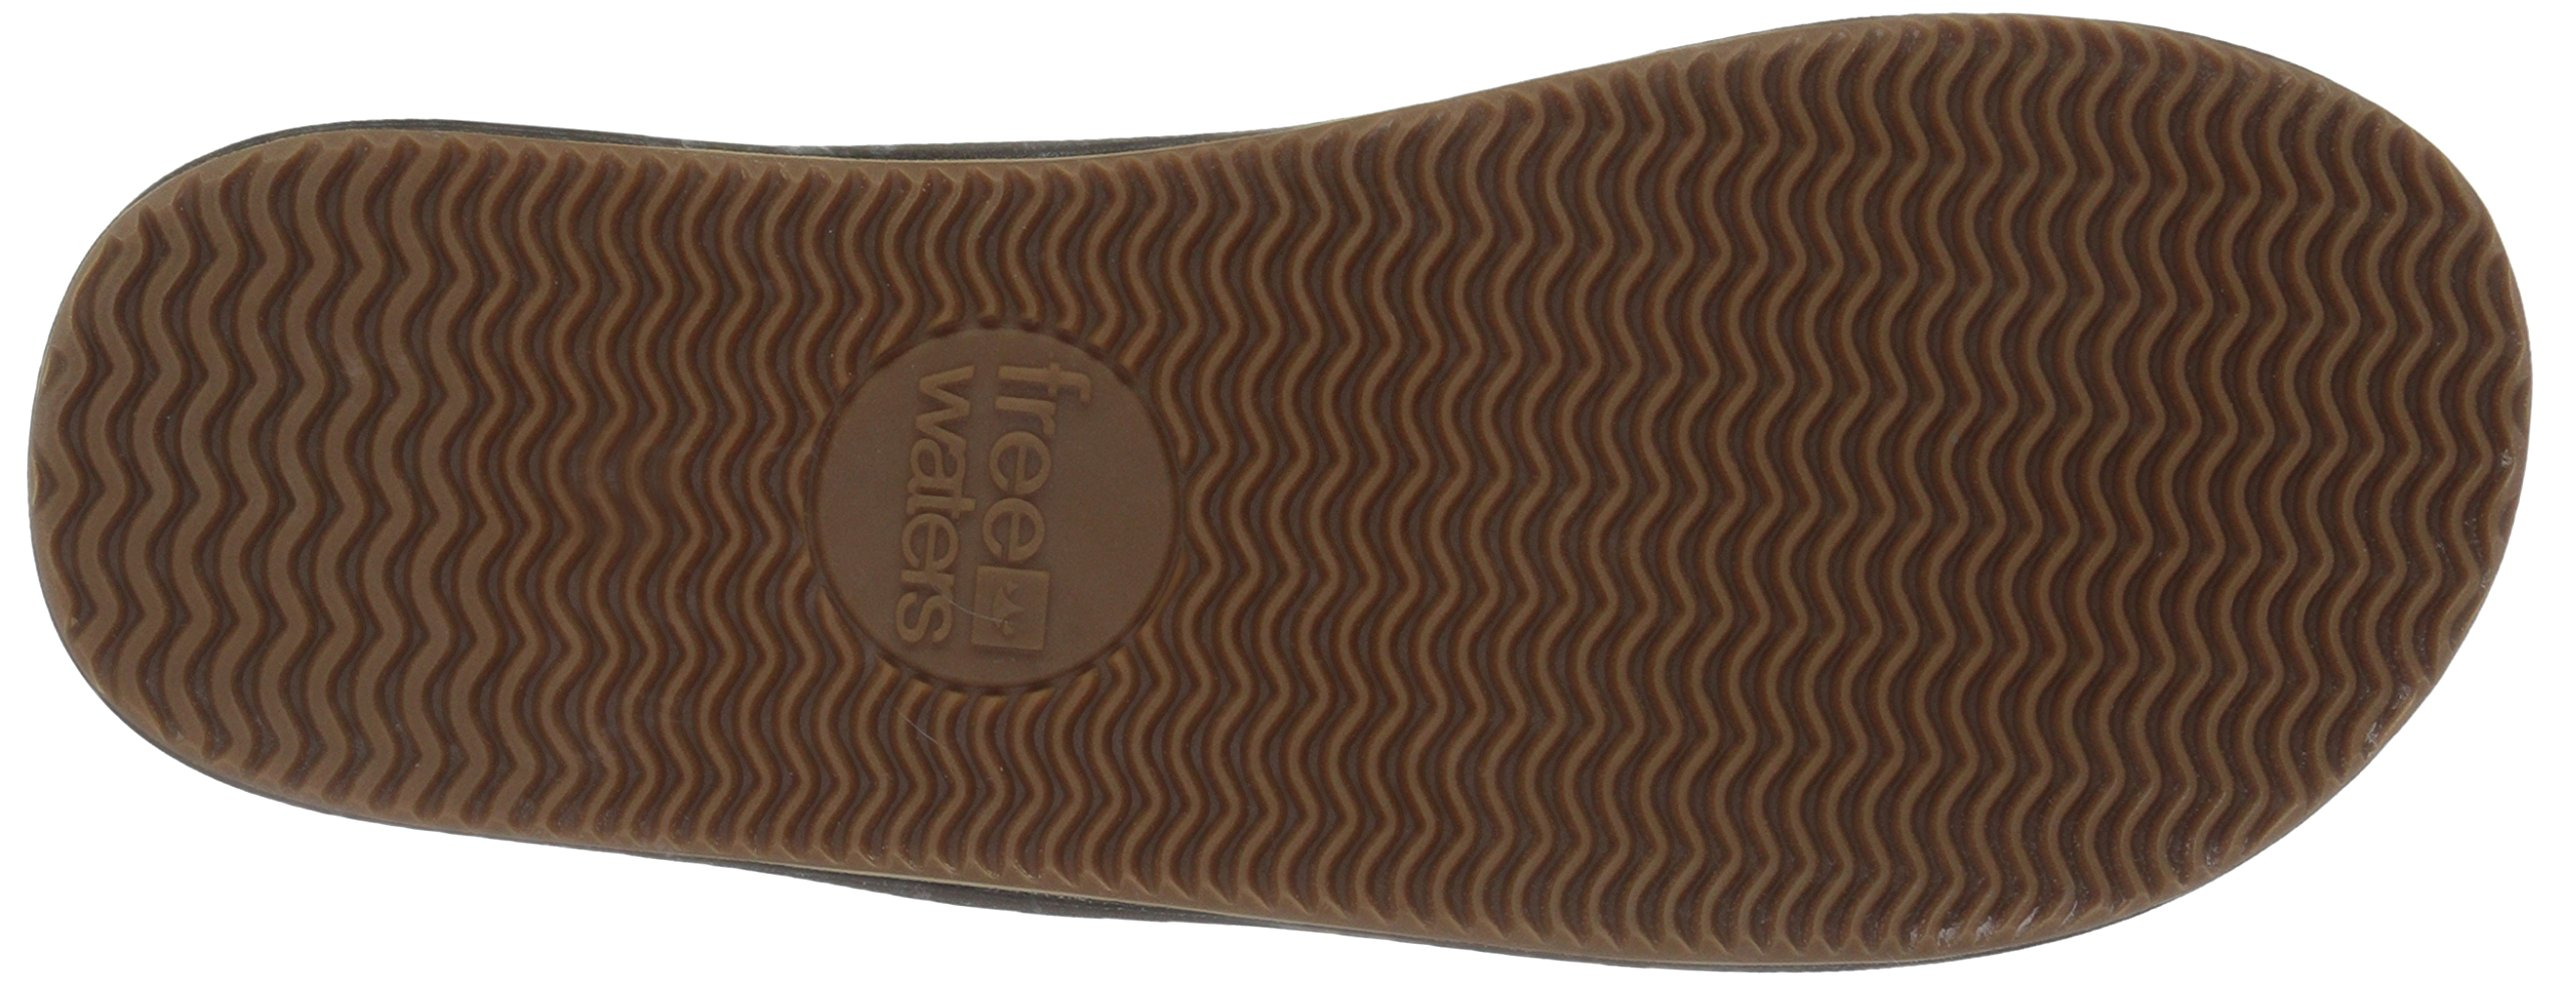 Freewaters Men's Basecamp Therm-a-Rest Flip Flop Sandal, Brown, 10 M US by Freewaters (Image #3)